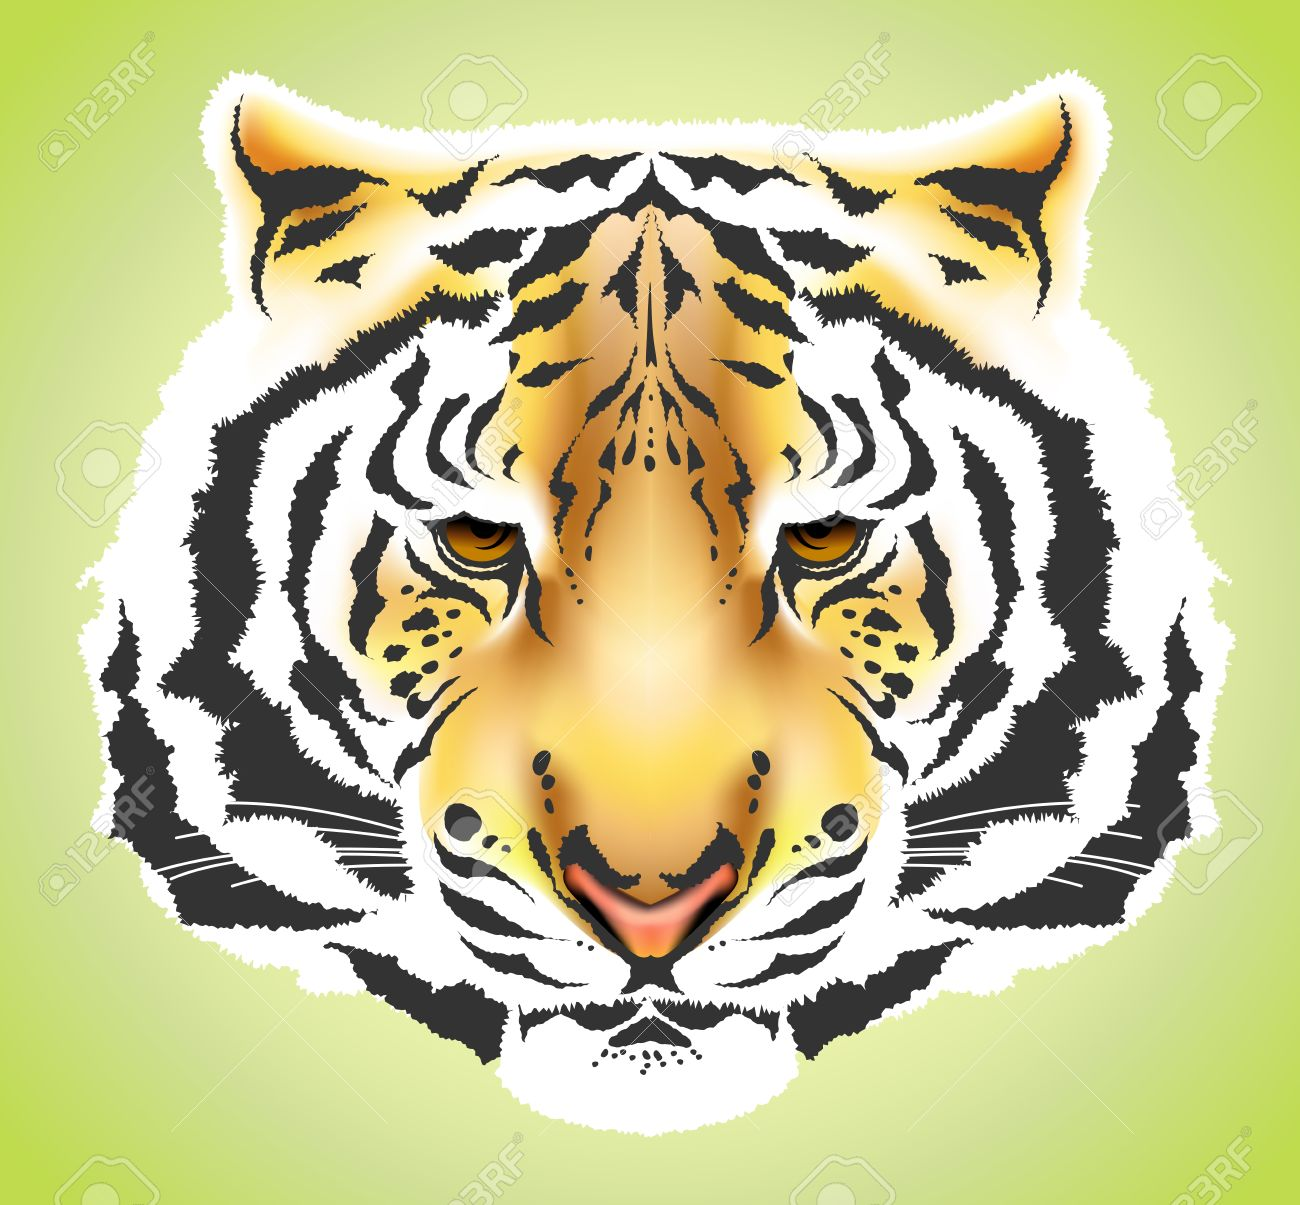 Tiger head colorful high quality illustration - gradient mesh Stock Vector - 7860231